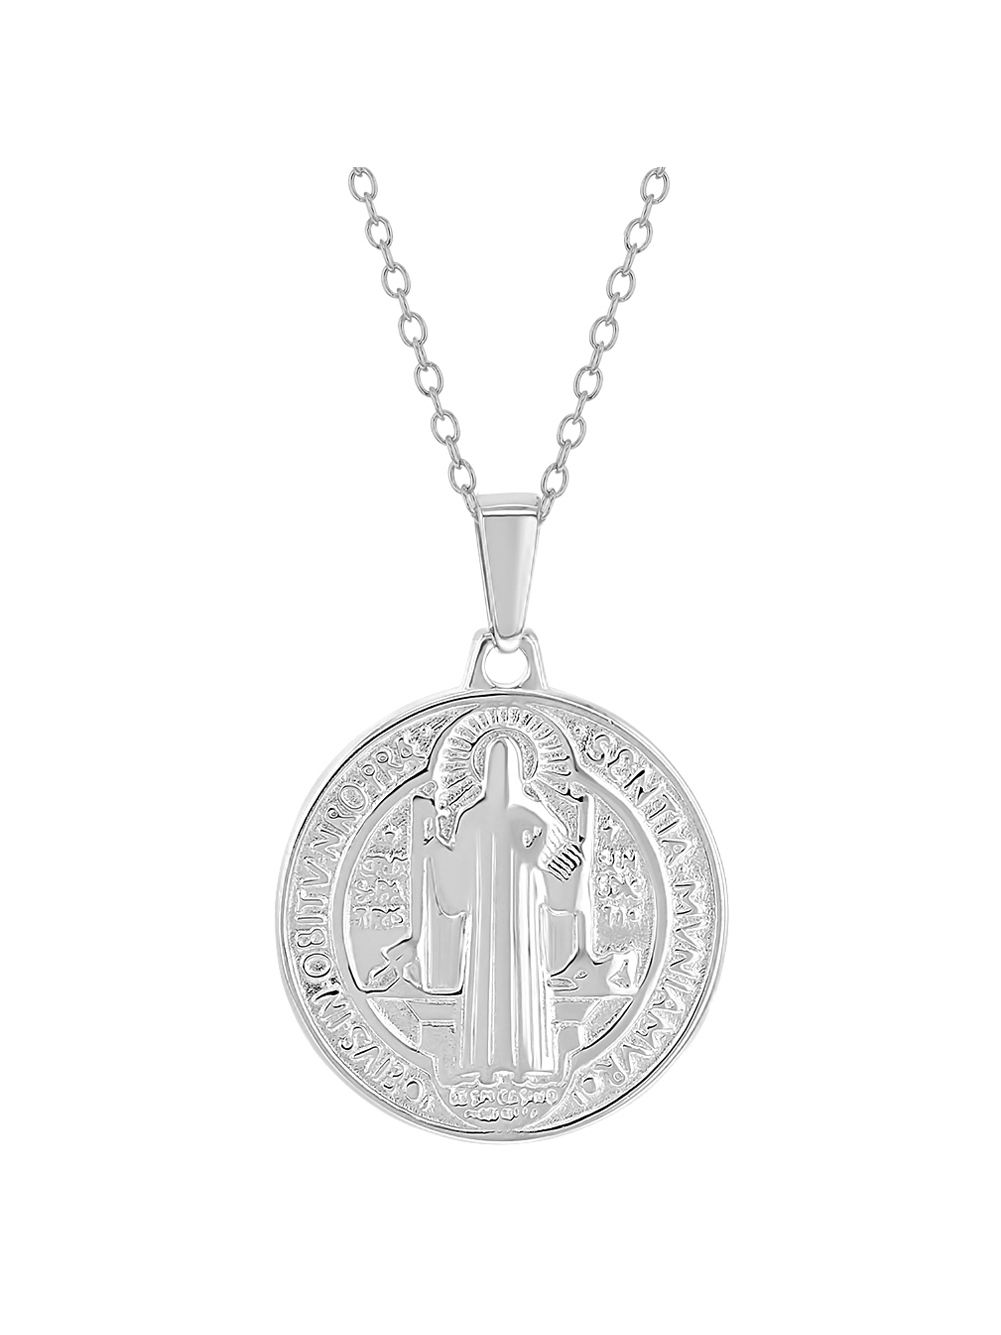 Black ball chain necklace with Saint Benedict pendant Catholic chain necklace. Saint Benedict chain Necklace Saint Benedict Necklace